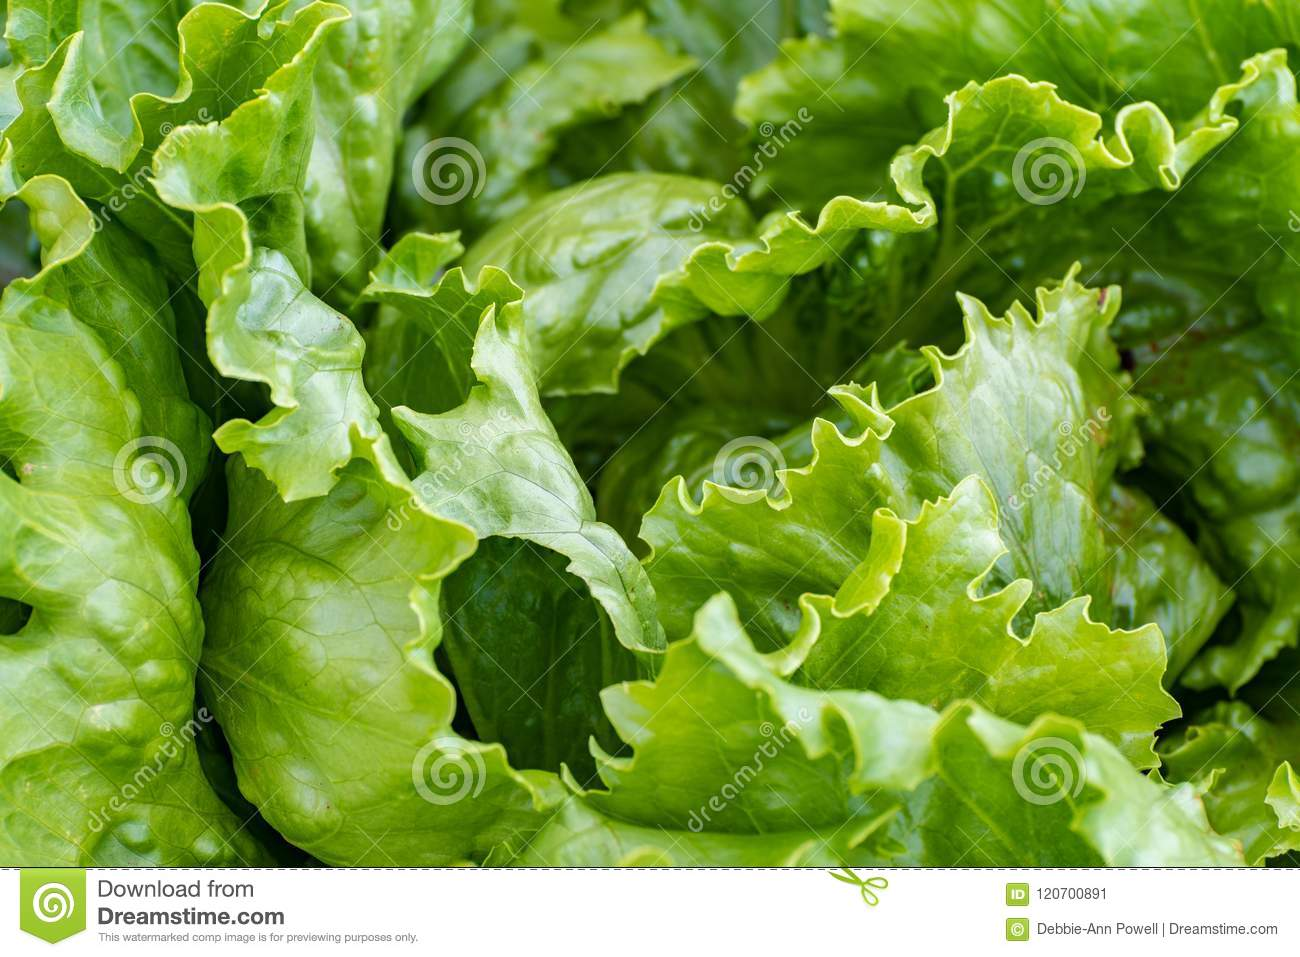 Growing lettuce head leaves up close